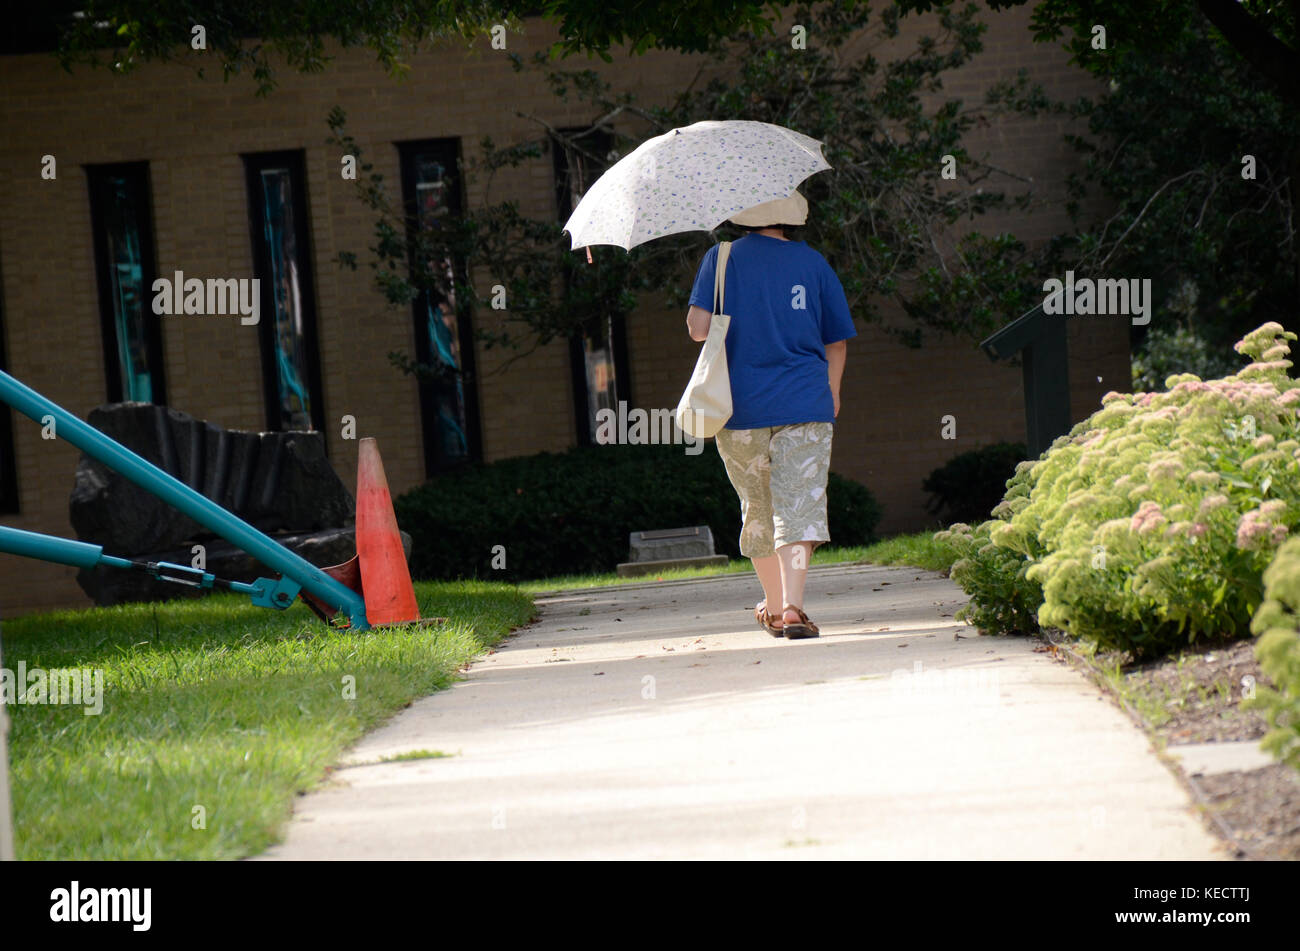 woman with a umbrella to keep cool walks down the sidewalk - Stock Image